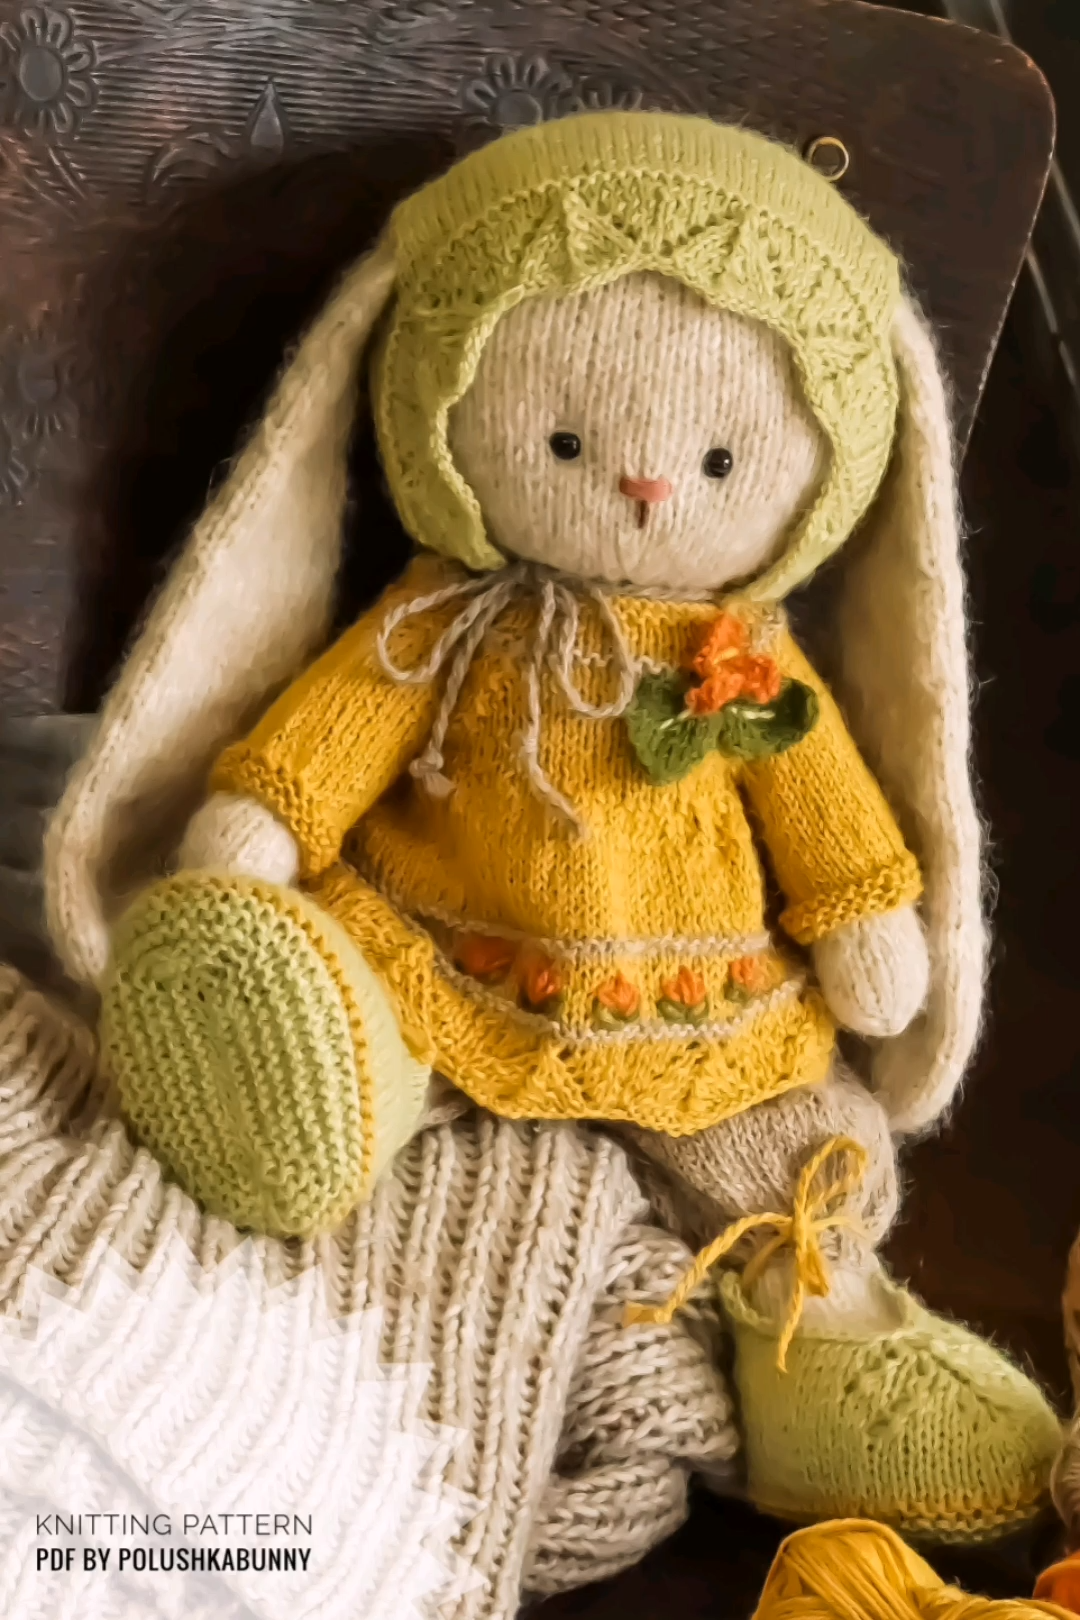 Photo of Easter Knitting Pattern Gemütliches Outfit für Bunny von PolushkaBunny #Easter #bunny #knitting #pattern